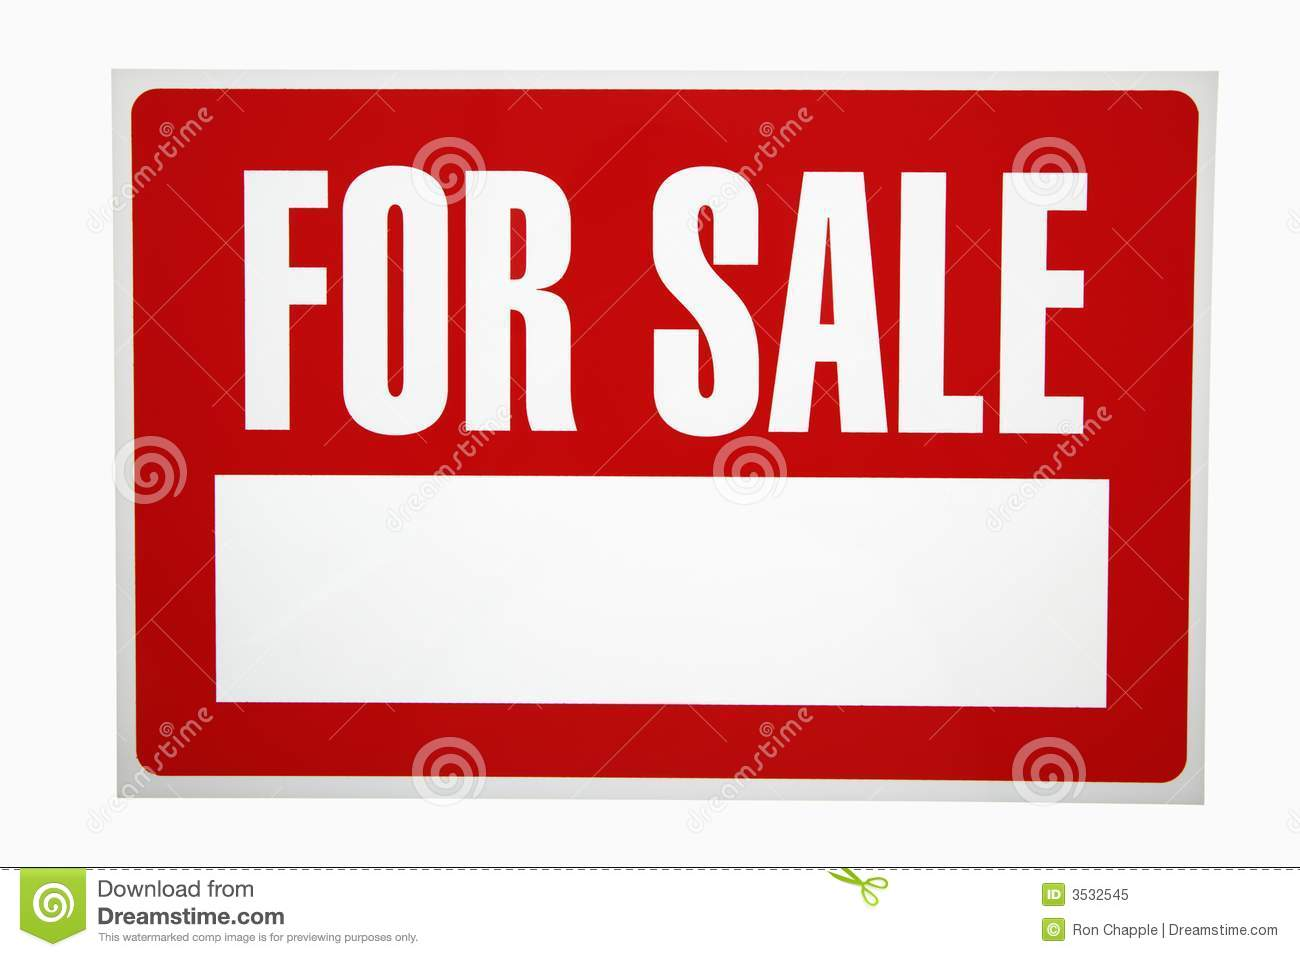 For sale sign royalty free stock photo image 3532545 for Photographs for sale online